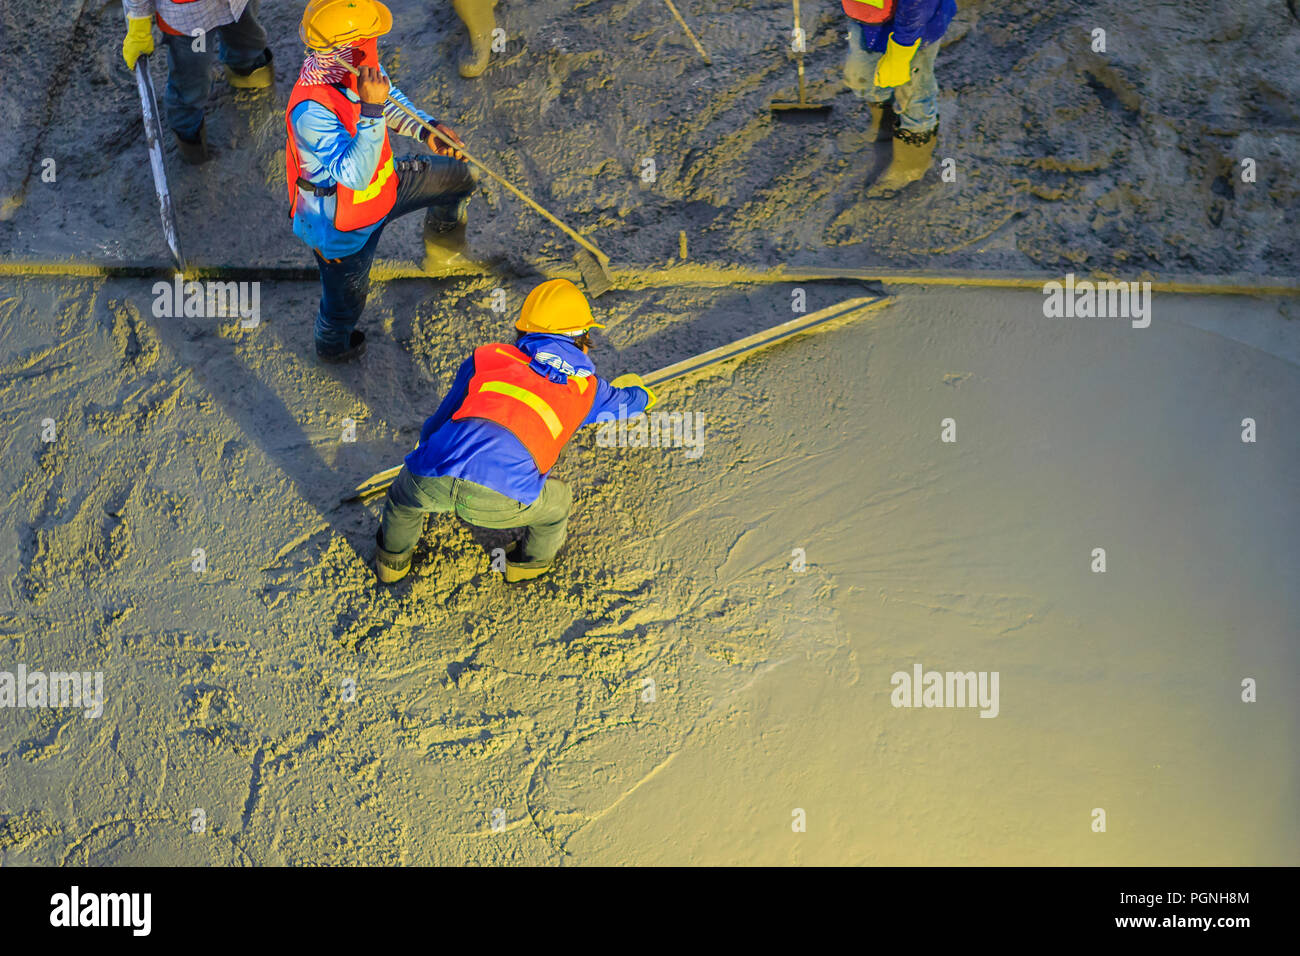 Mason worker leveling concrete with trowels, mason hands spreading poured concrete. Concreting workers are leveling poured liquid concrete on a steel  Stock Photo